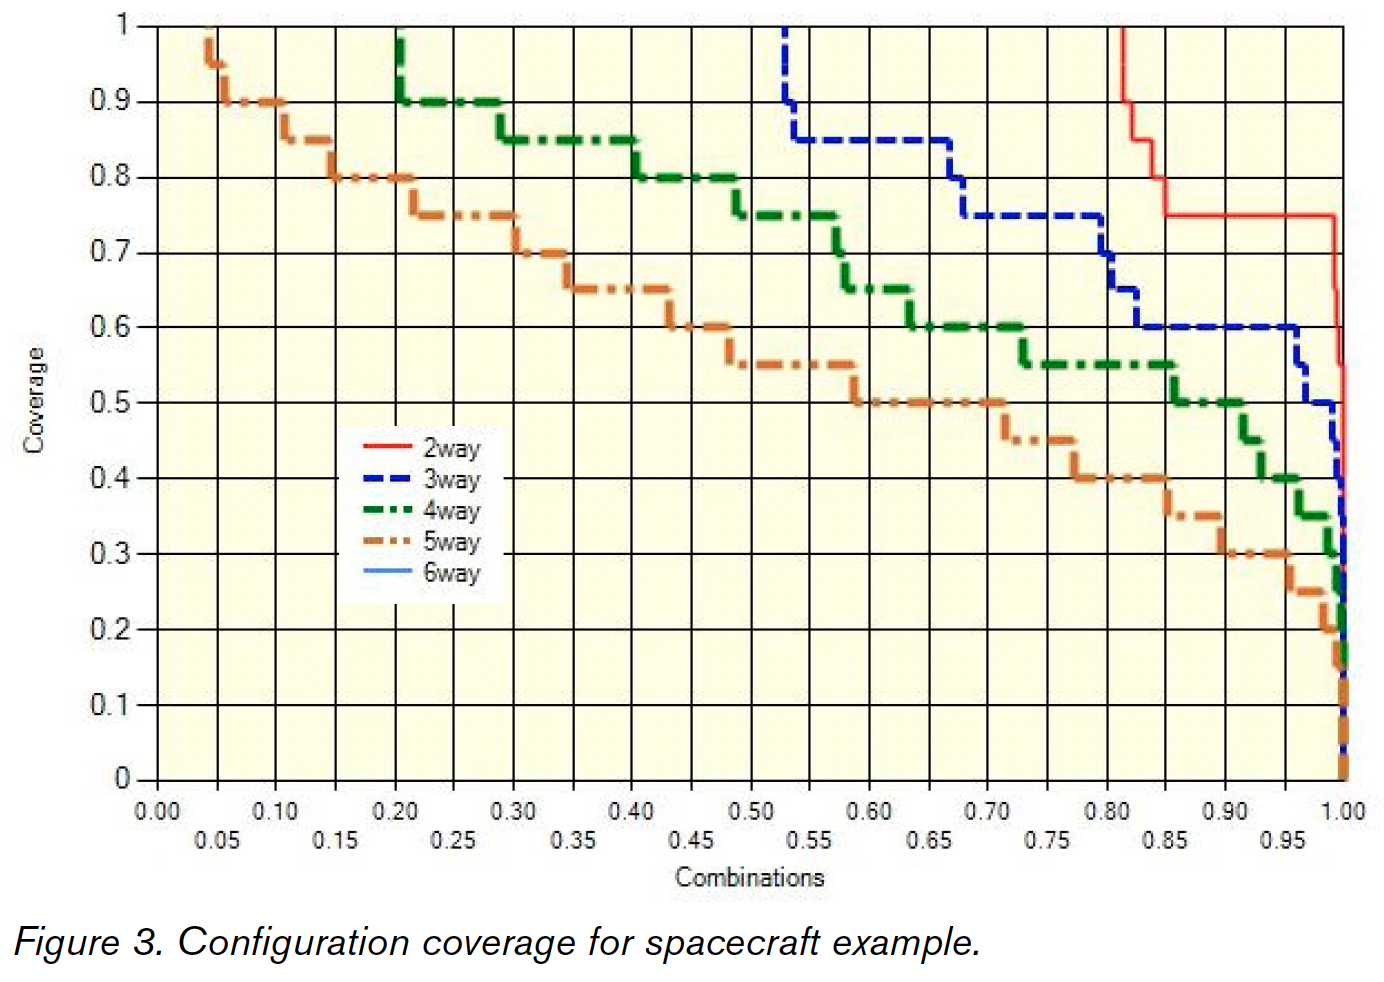 Spacecraft test coverage